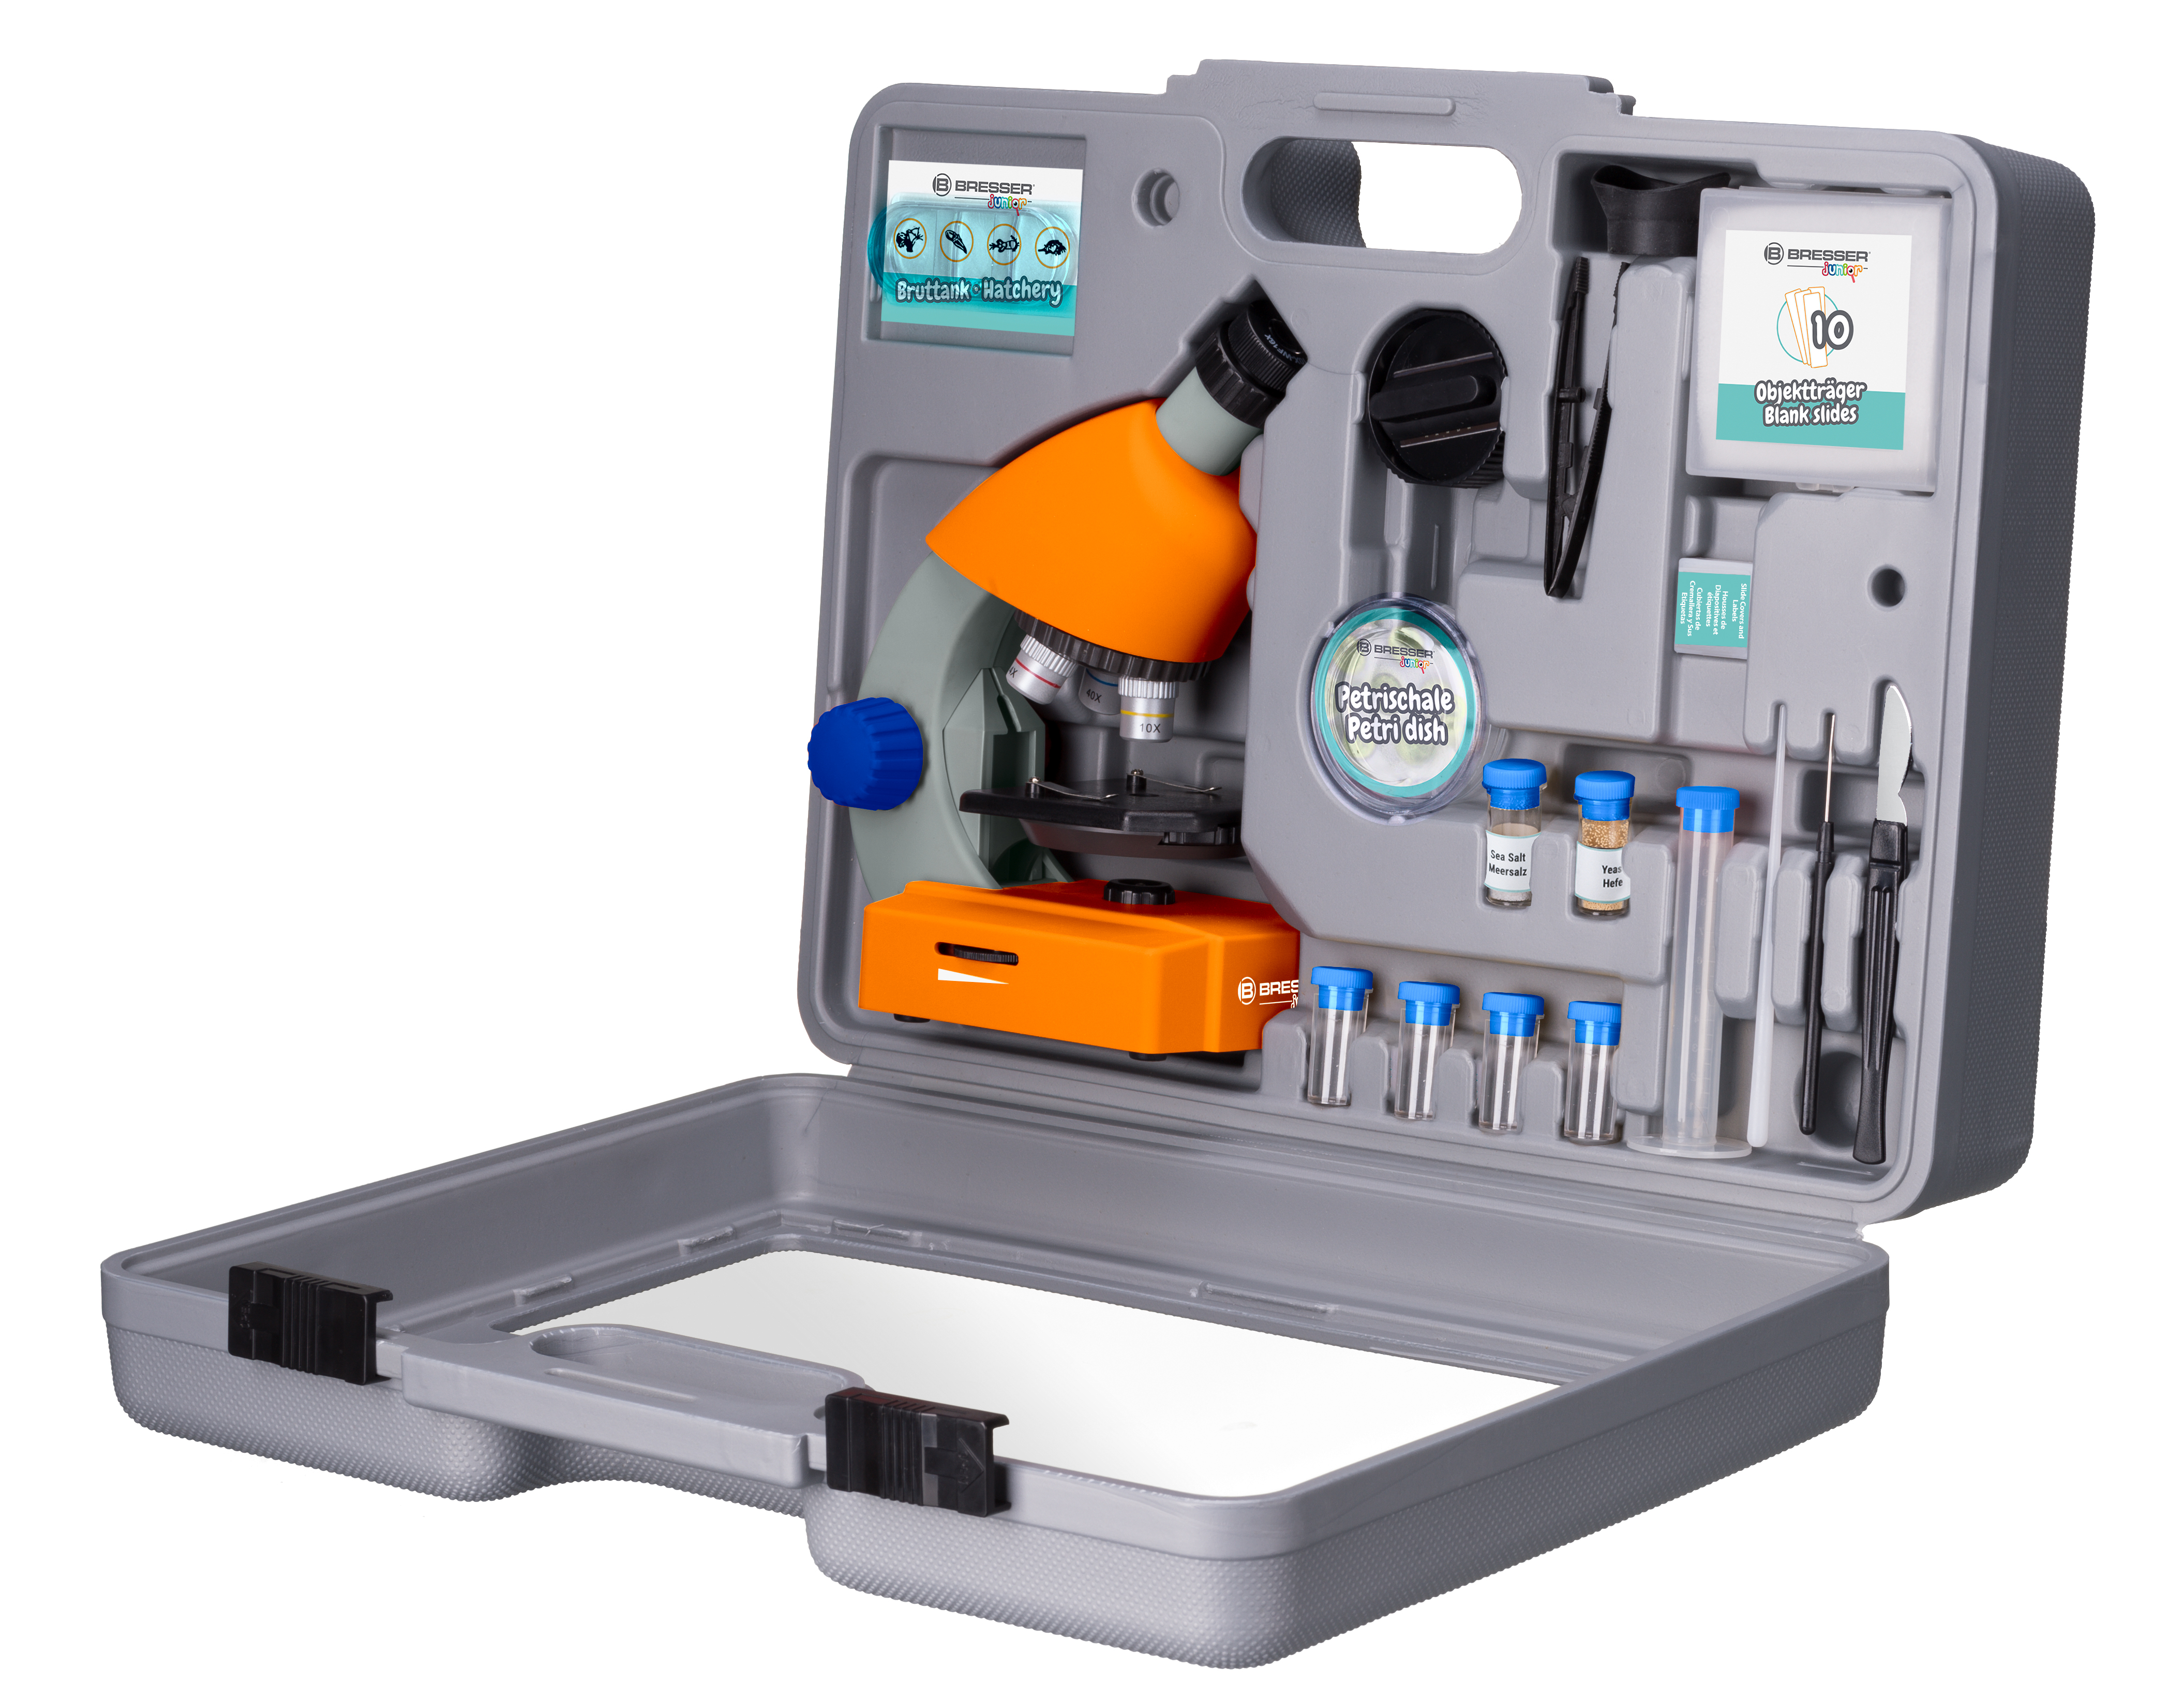 Bresser junior 40x 640x microscope with accessories and hard case